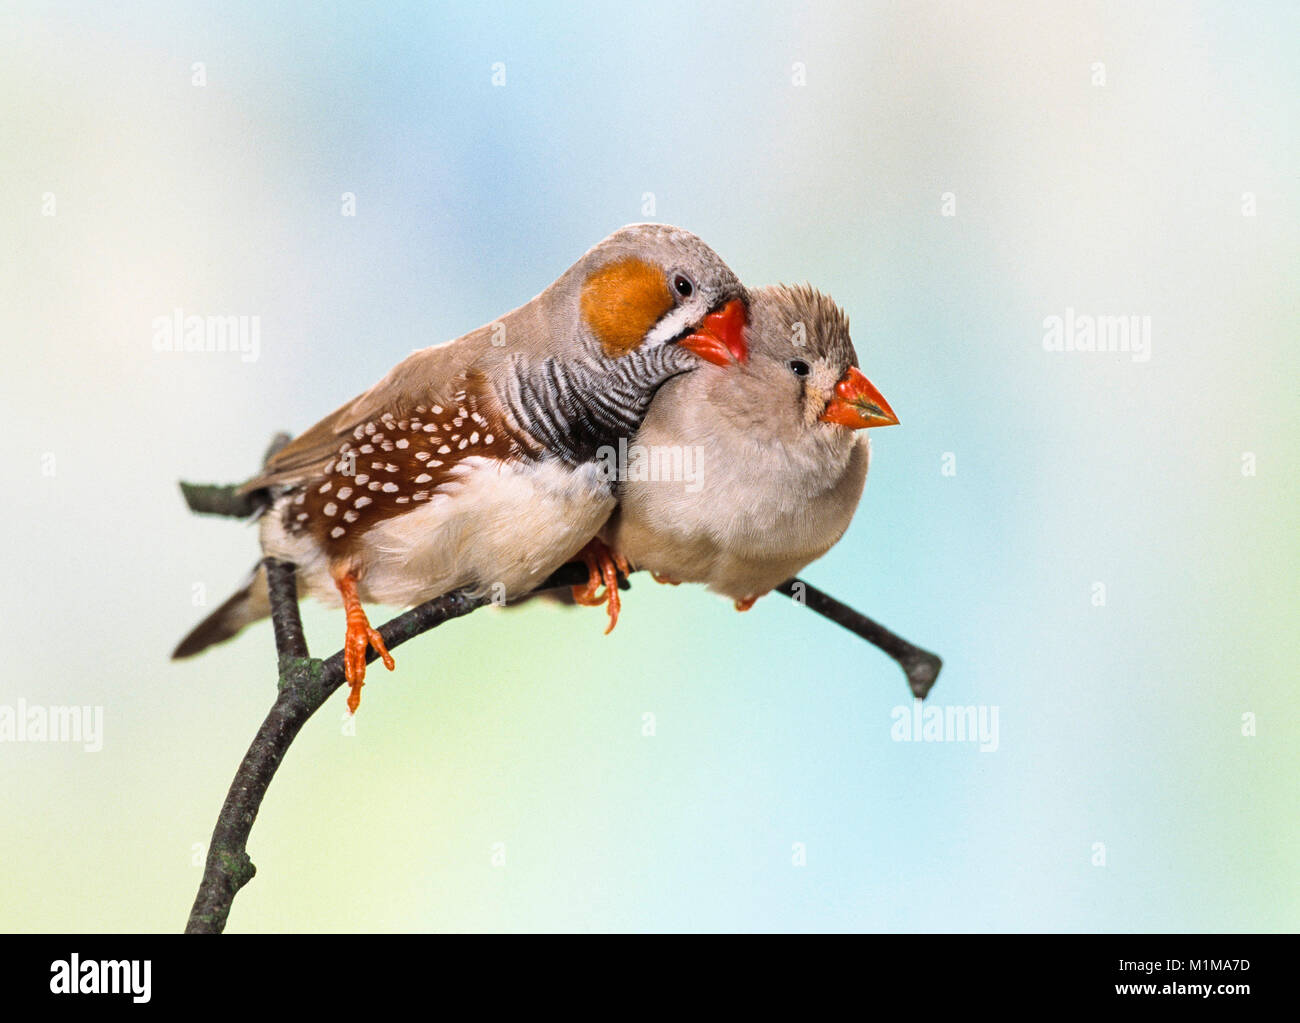 Zebra Finch (Taeniopygia guttata). Tender couple perched on a twig. Germany - Stock Image